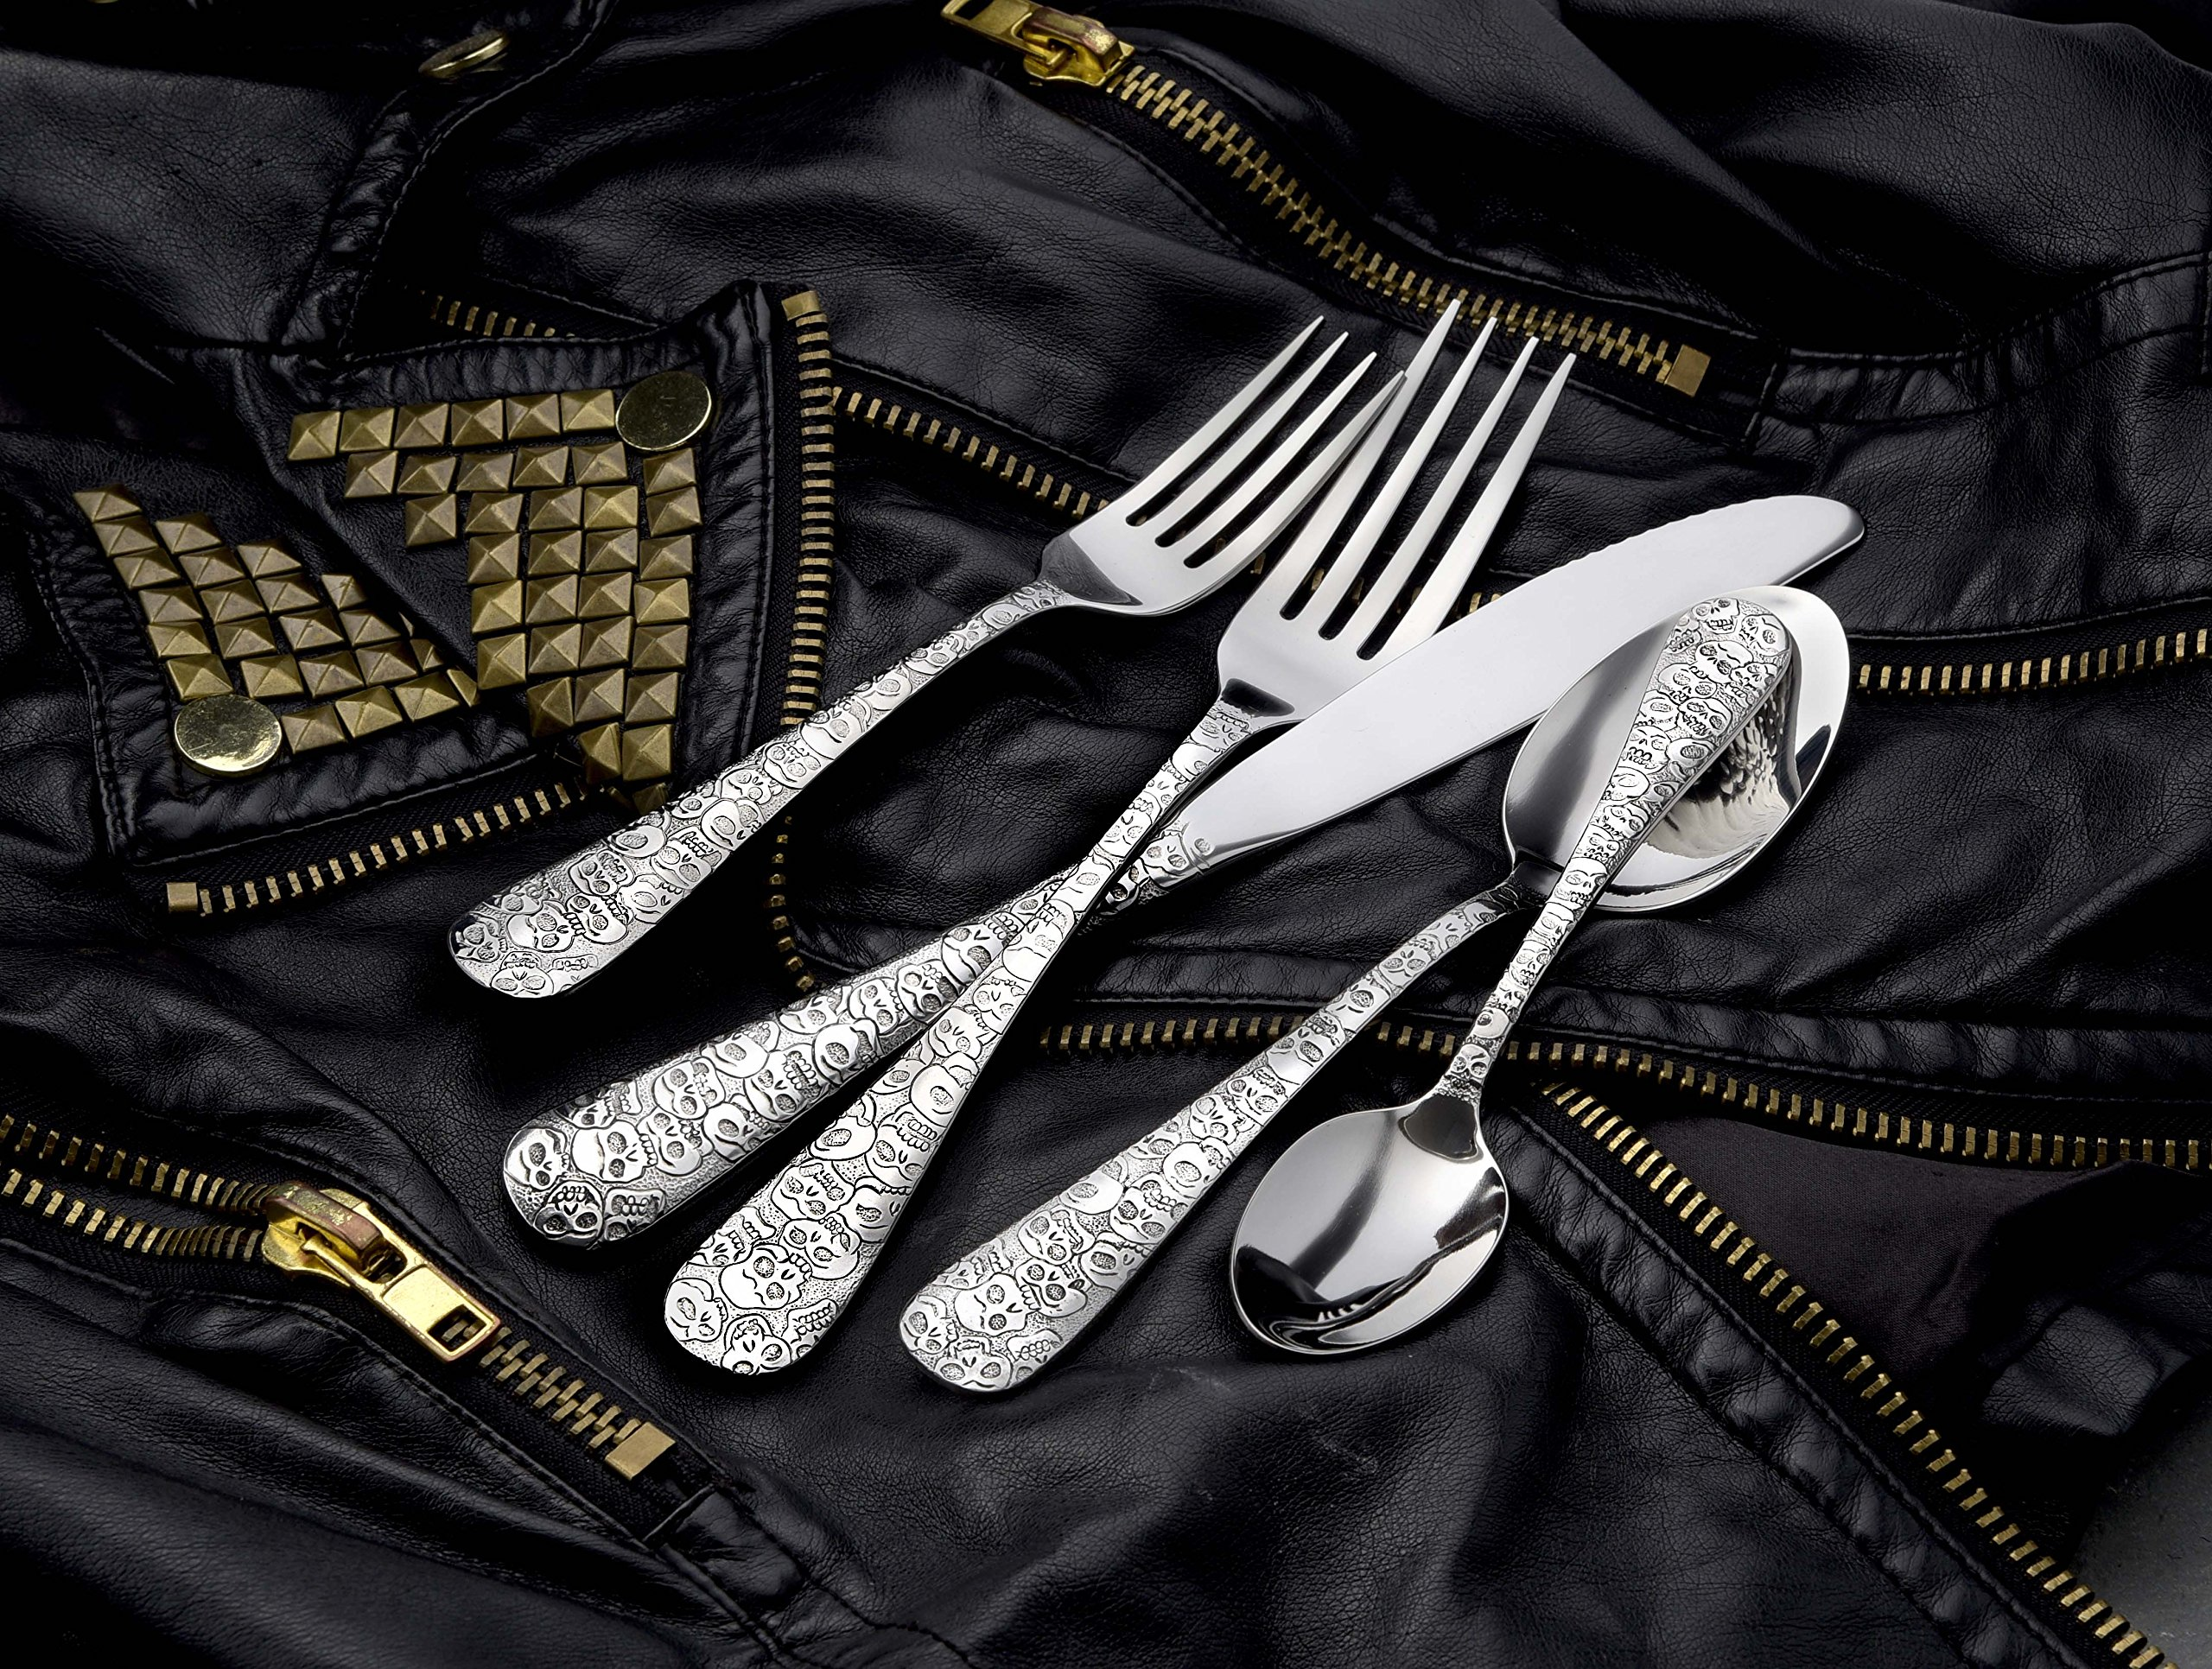 Liberty Tabletop Calavera (Skull) 65 Piece Flatware Set for 12 Made in USA by Liberty Tabletop (Image #5)